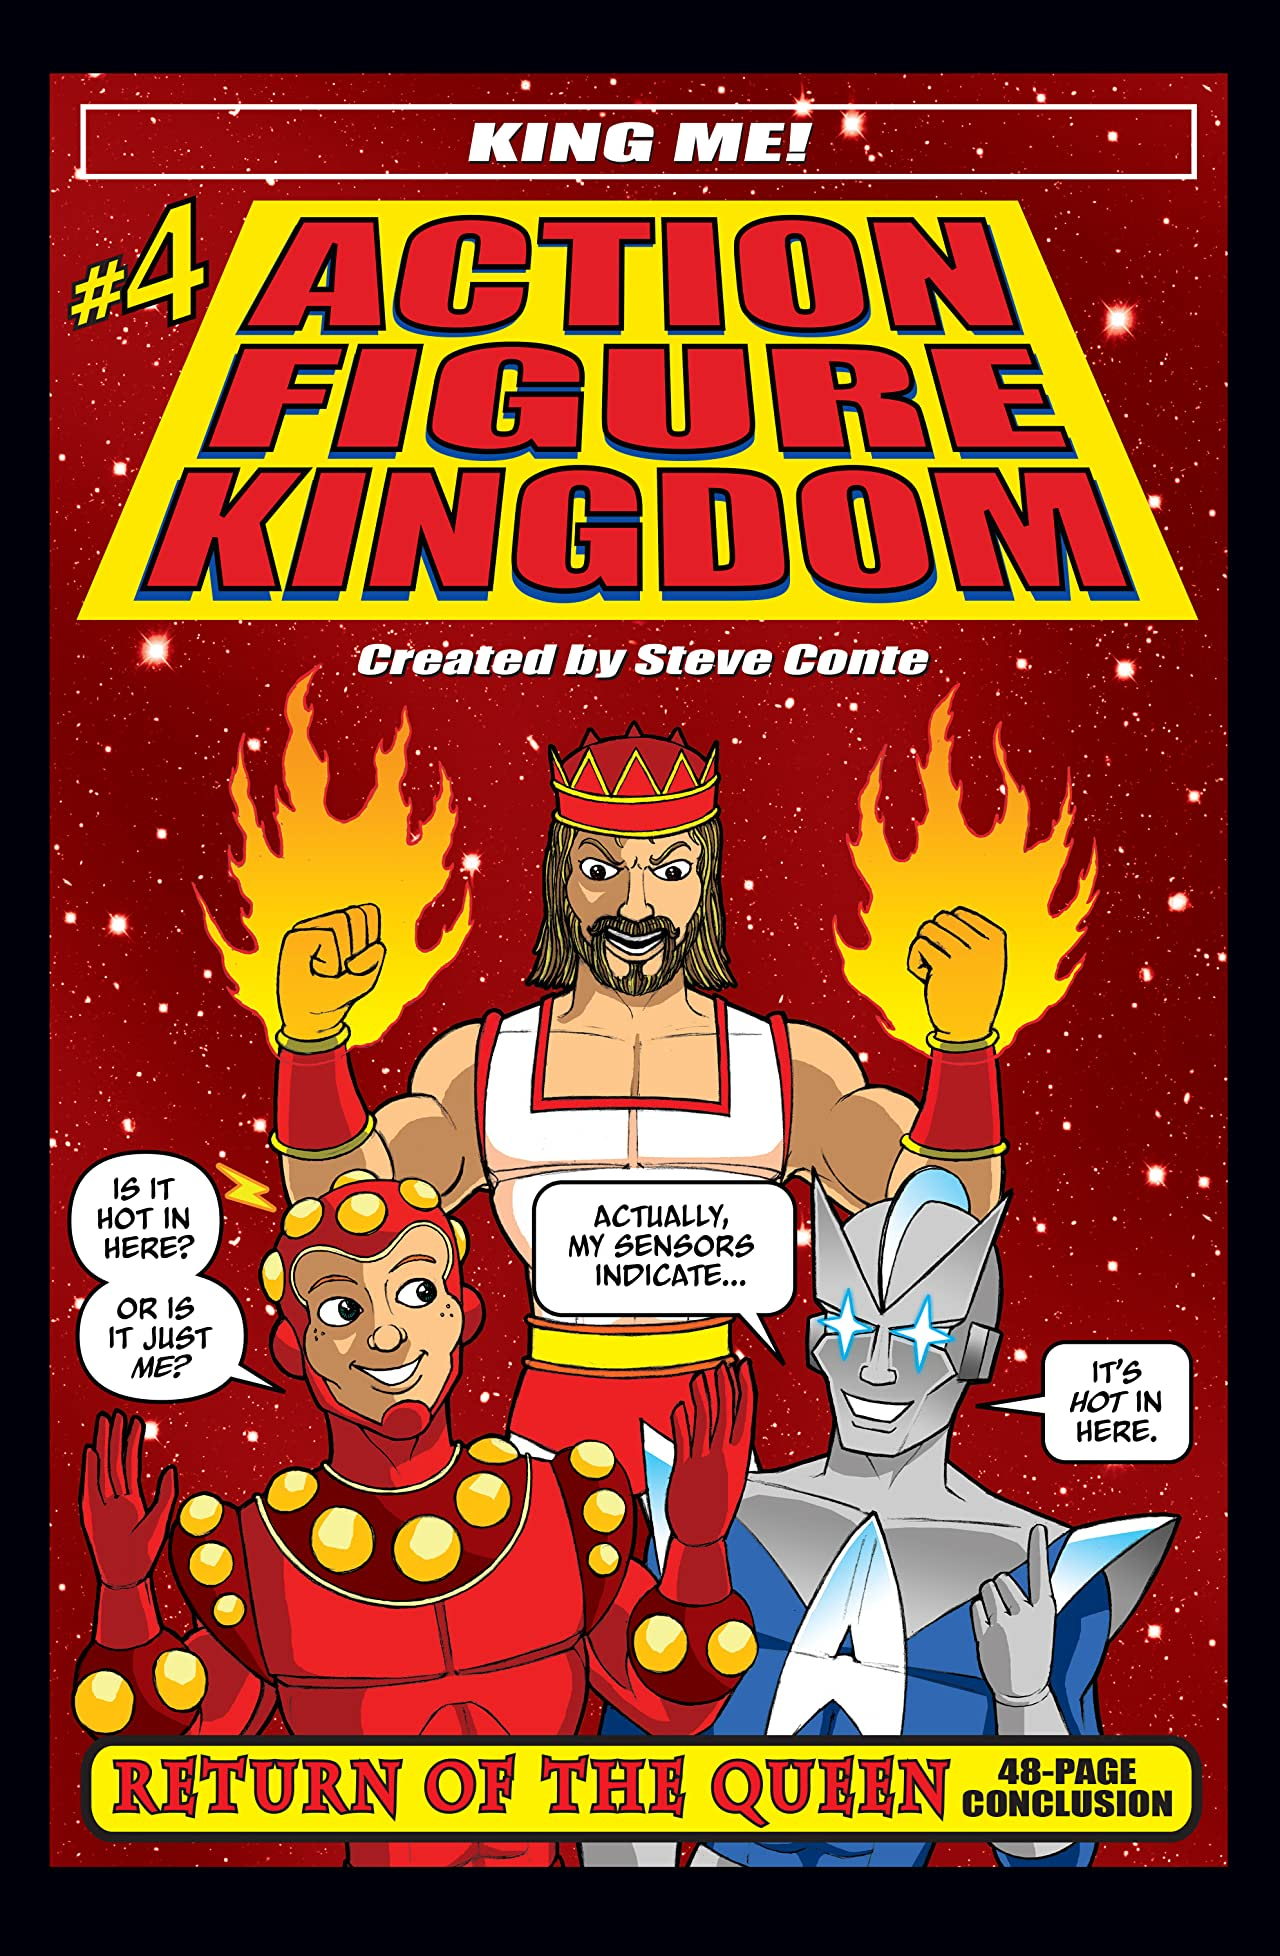 Action Figure Kingdom #4